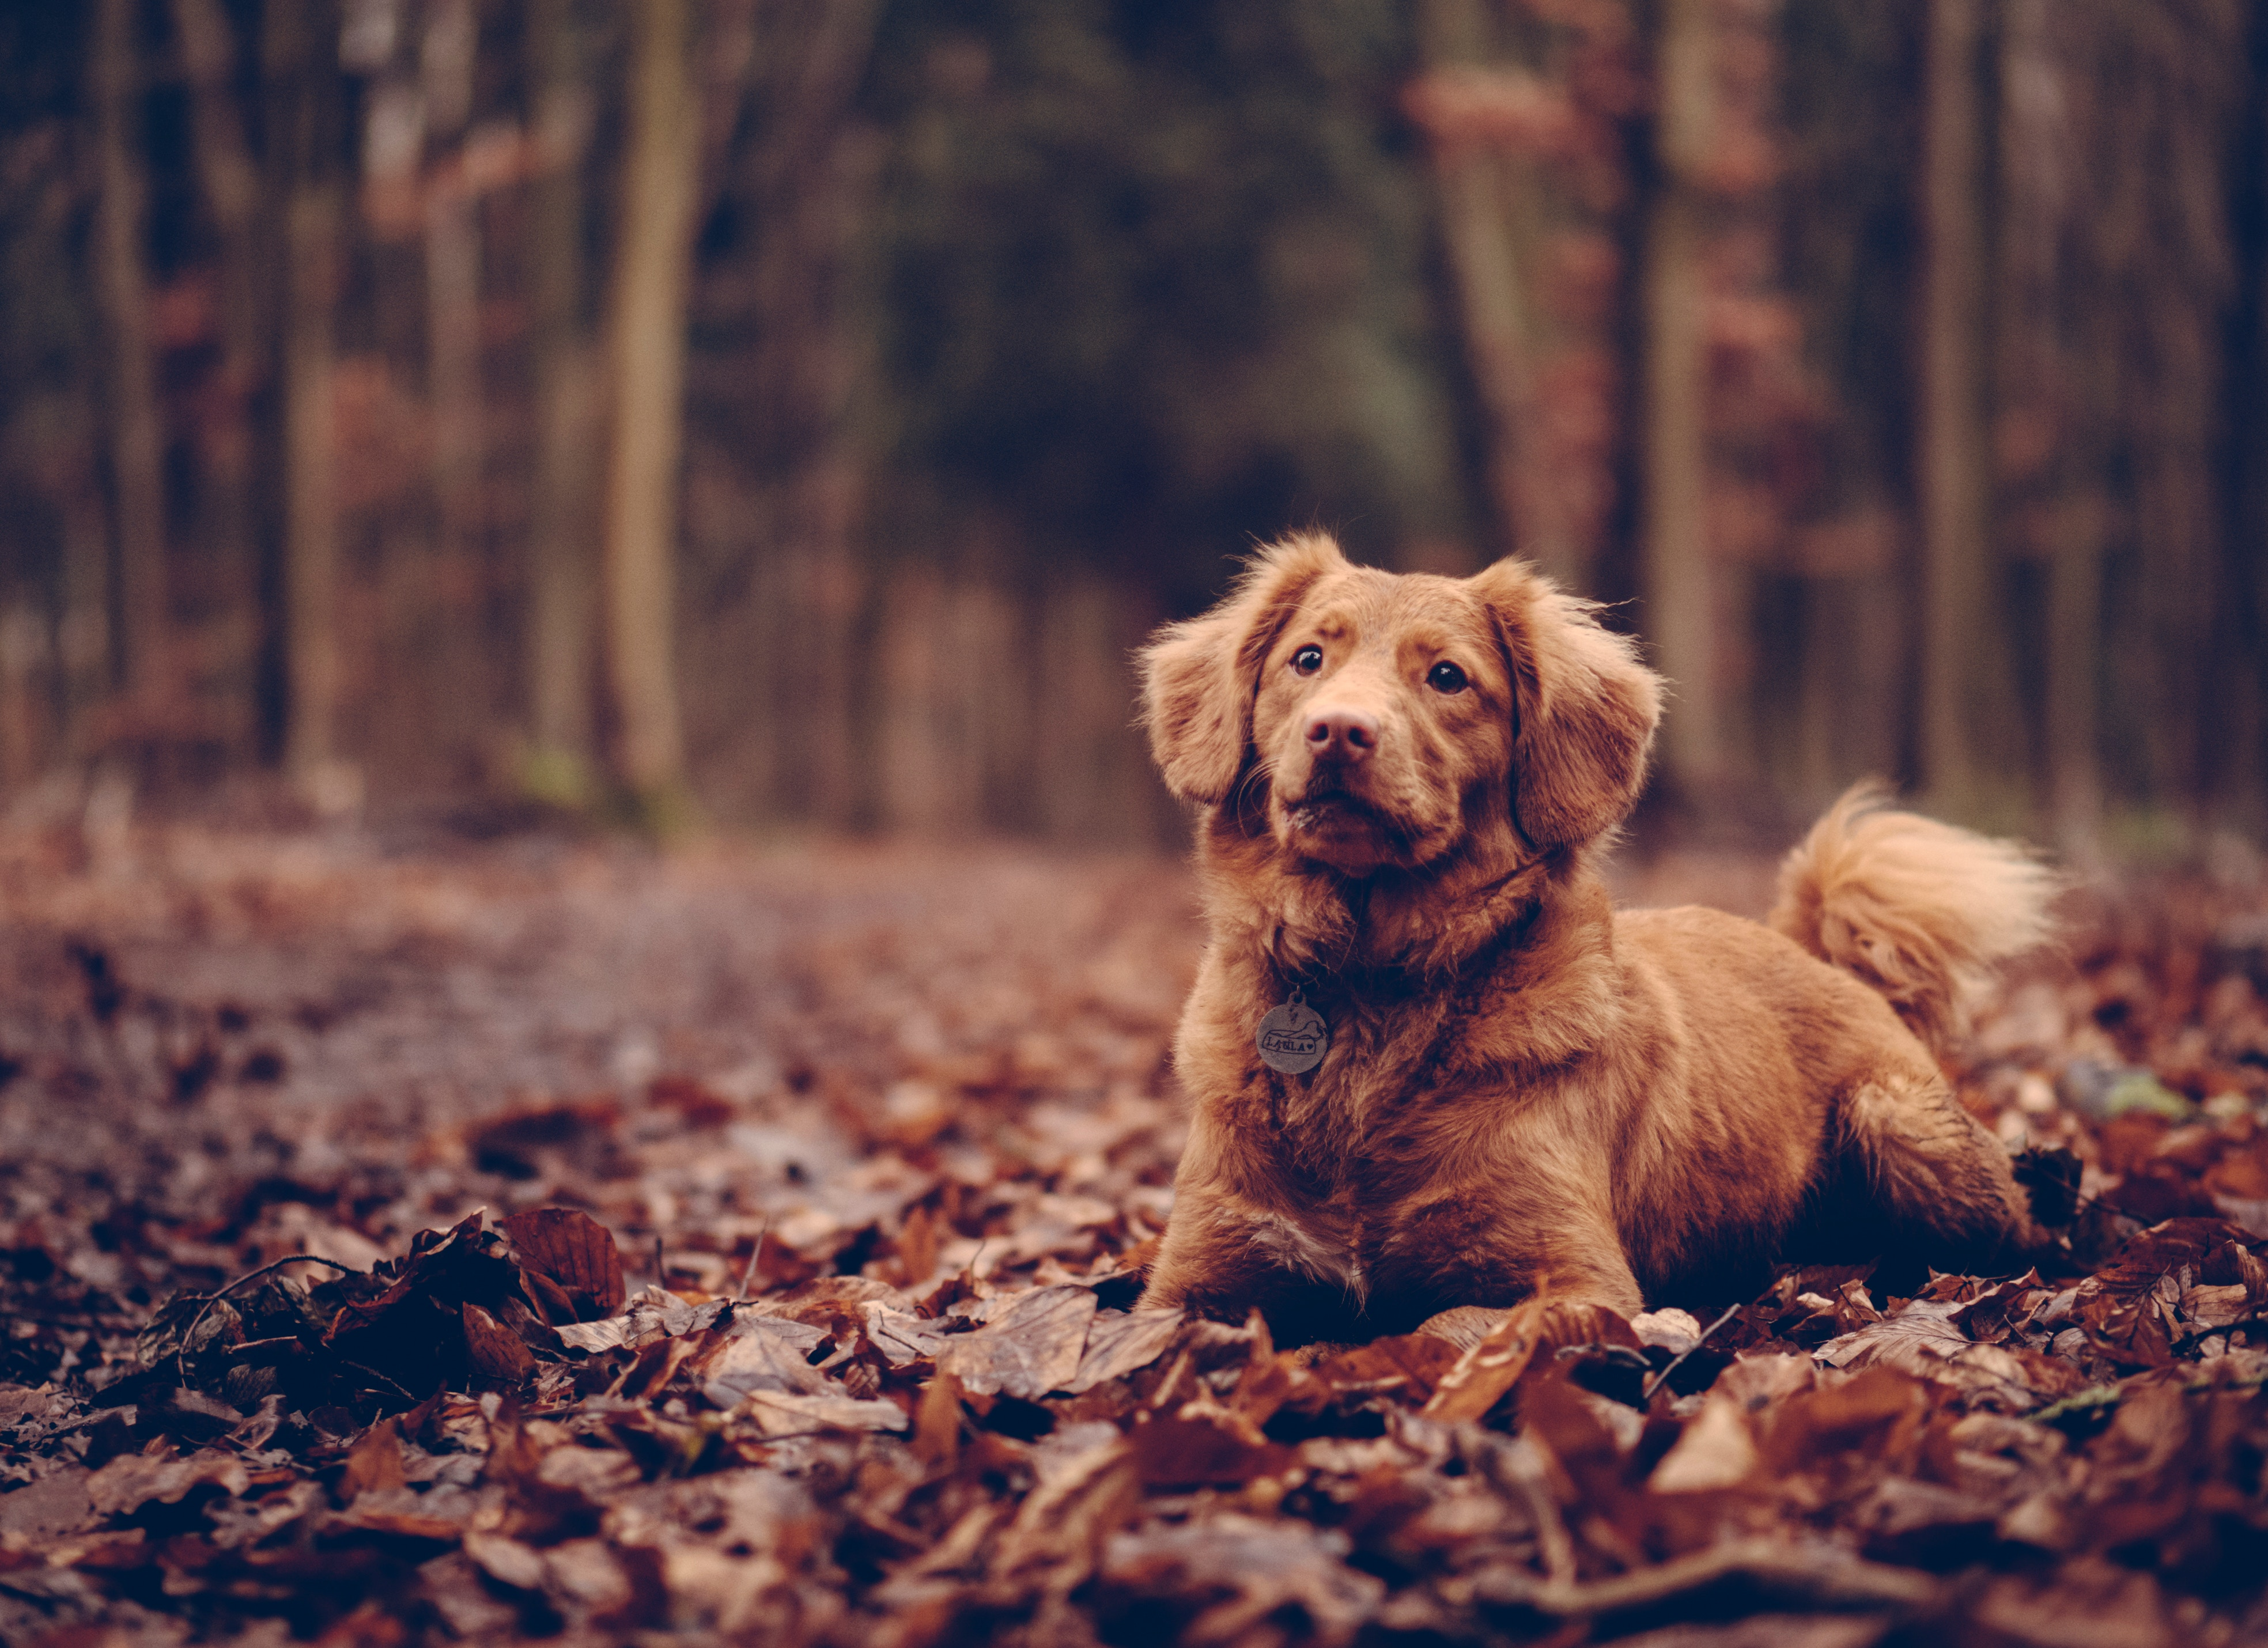 101883 Screensavers and Wallpapers Foliage for phone. Download Animals, Dog, Foliage, Is Sitting, Sits pictures for free